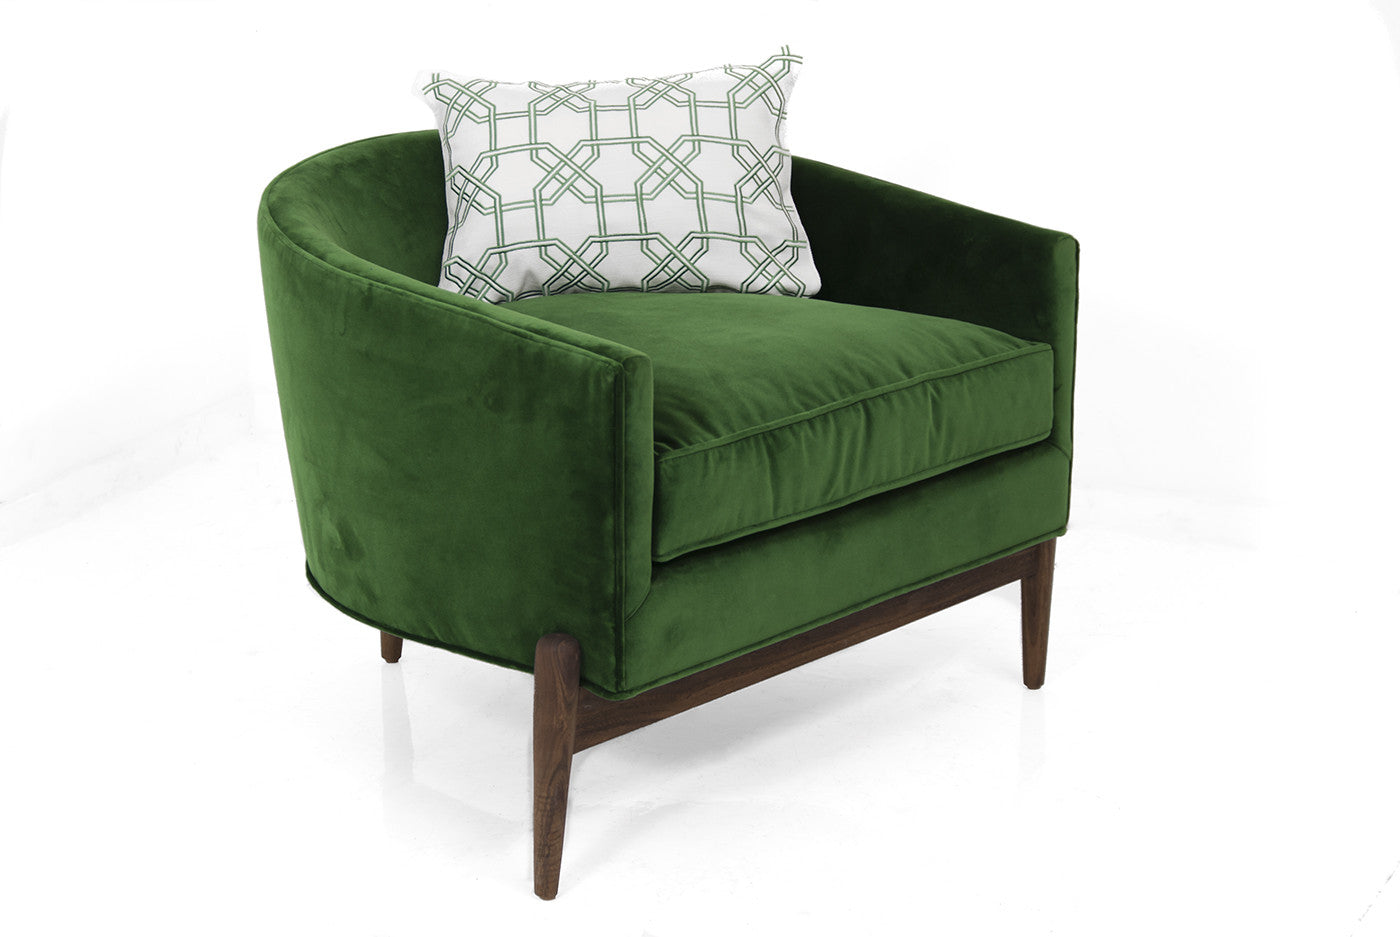 Modern art deco furniture - Art Deco Chair In Emerald Velvet